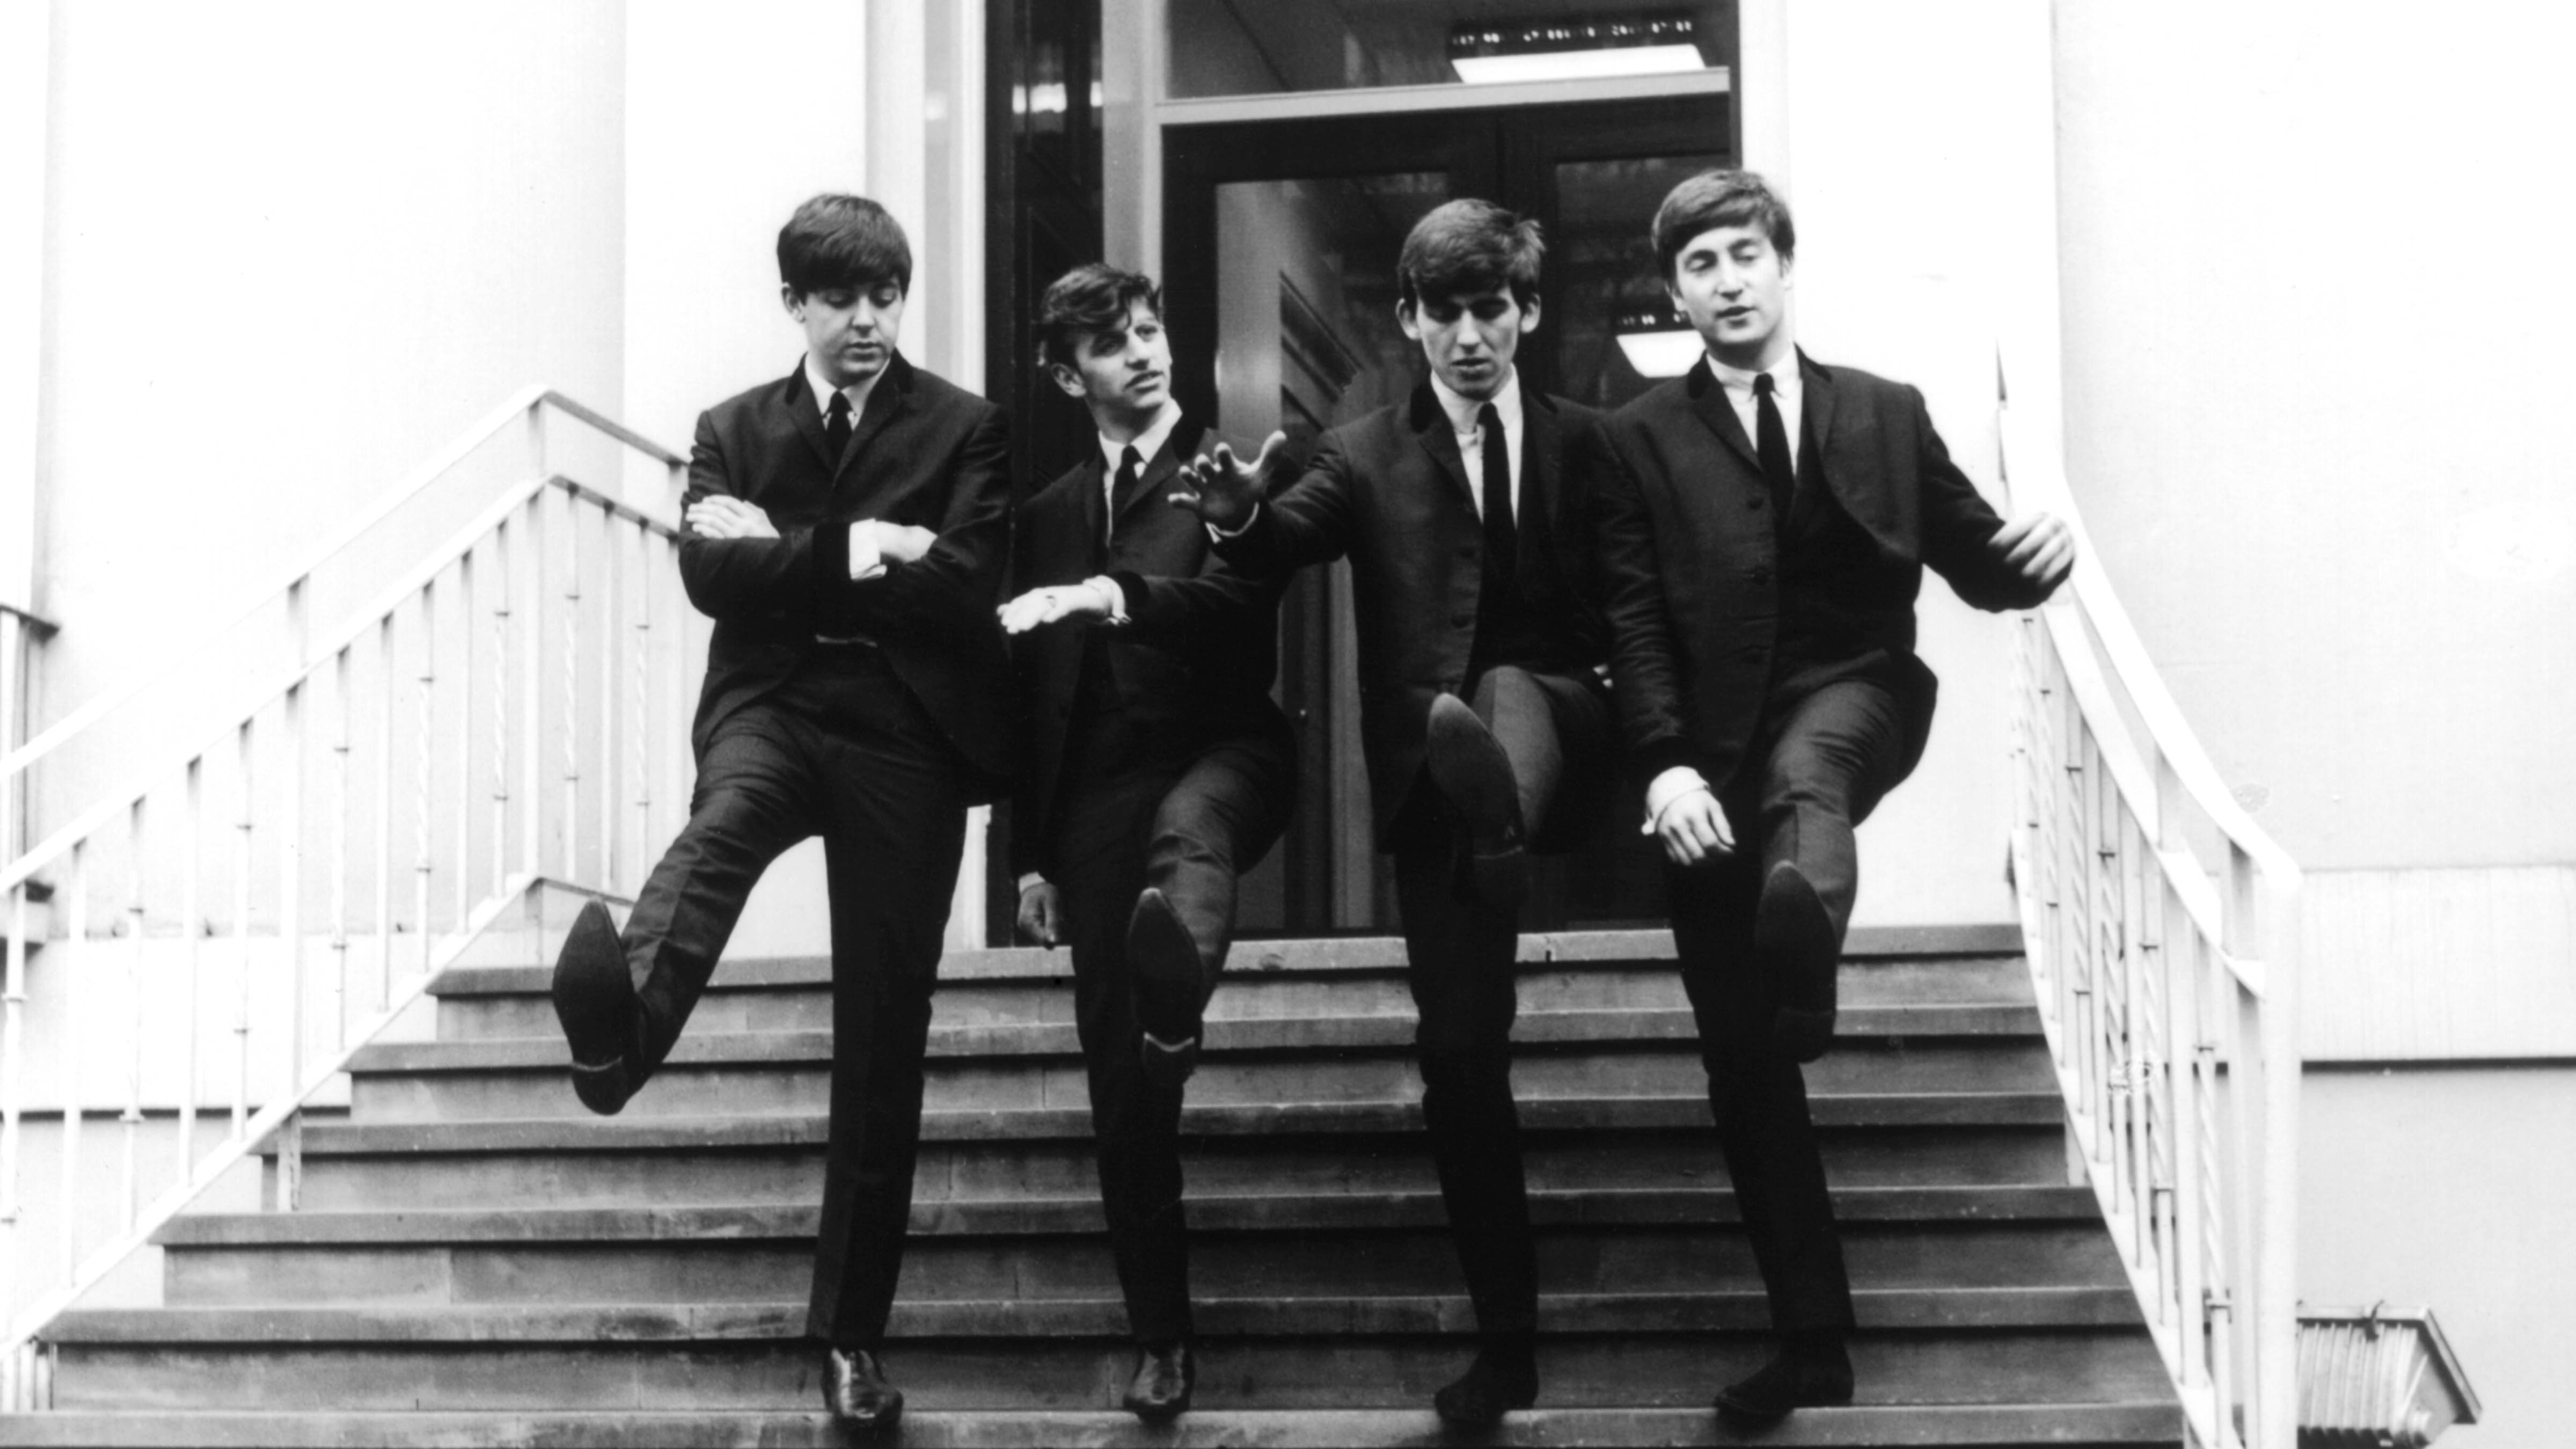 8 Songs A Week: Vote for your favorite Beatles songs with 'life' or 'living' in the lyrics (POLL CLOSES 8/20/2021)